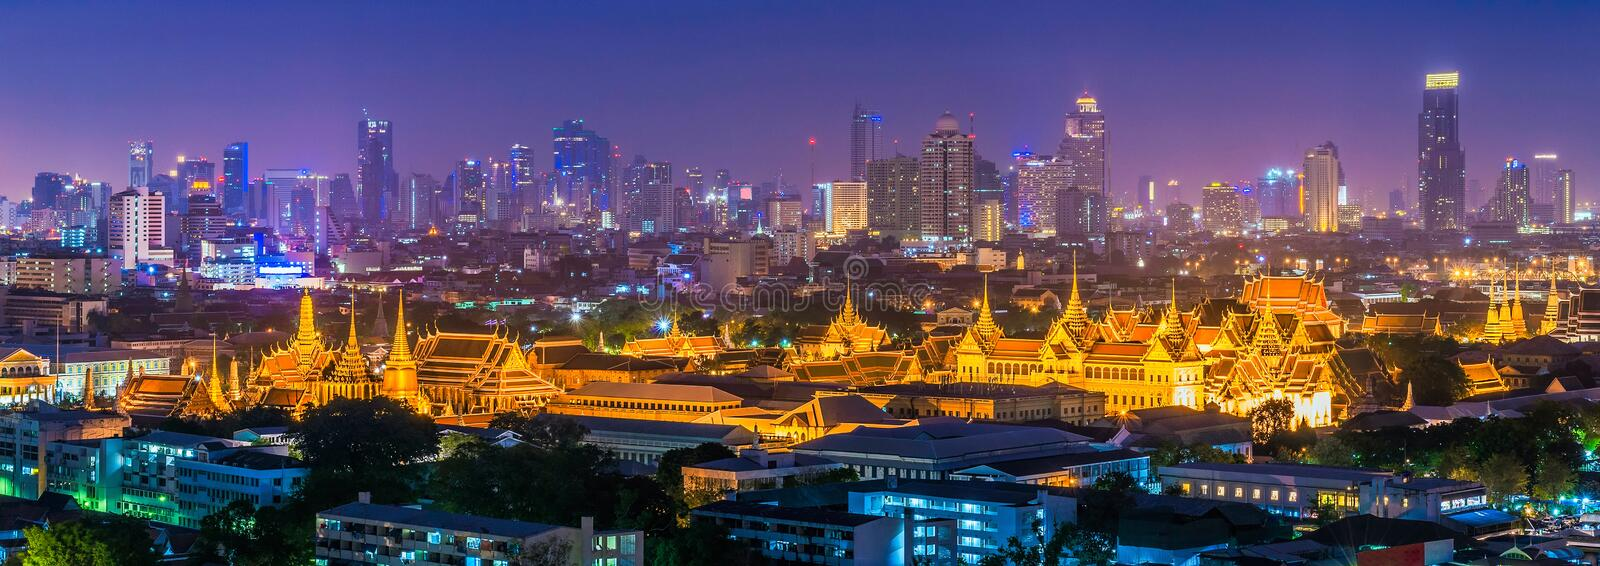 Panorama view of Emerald Buddha temple in Bangkok,Thailand royalty free stock photography